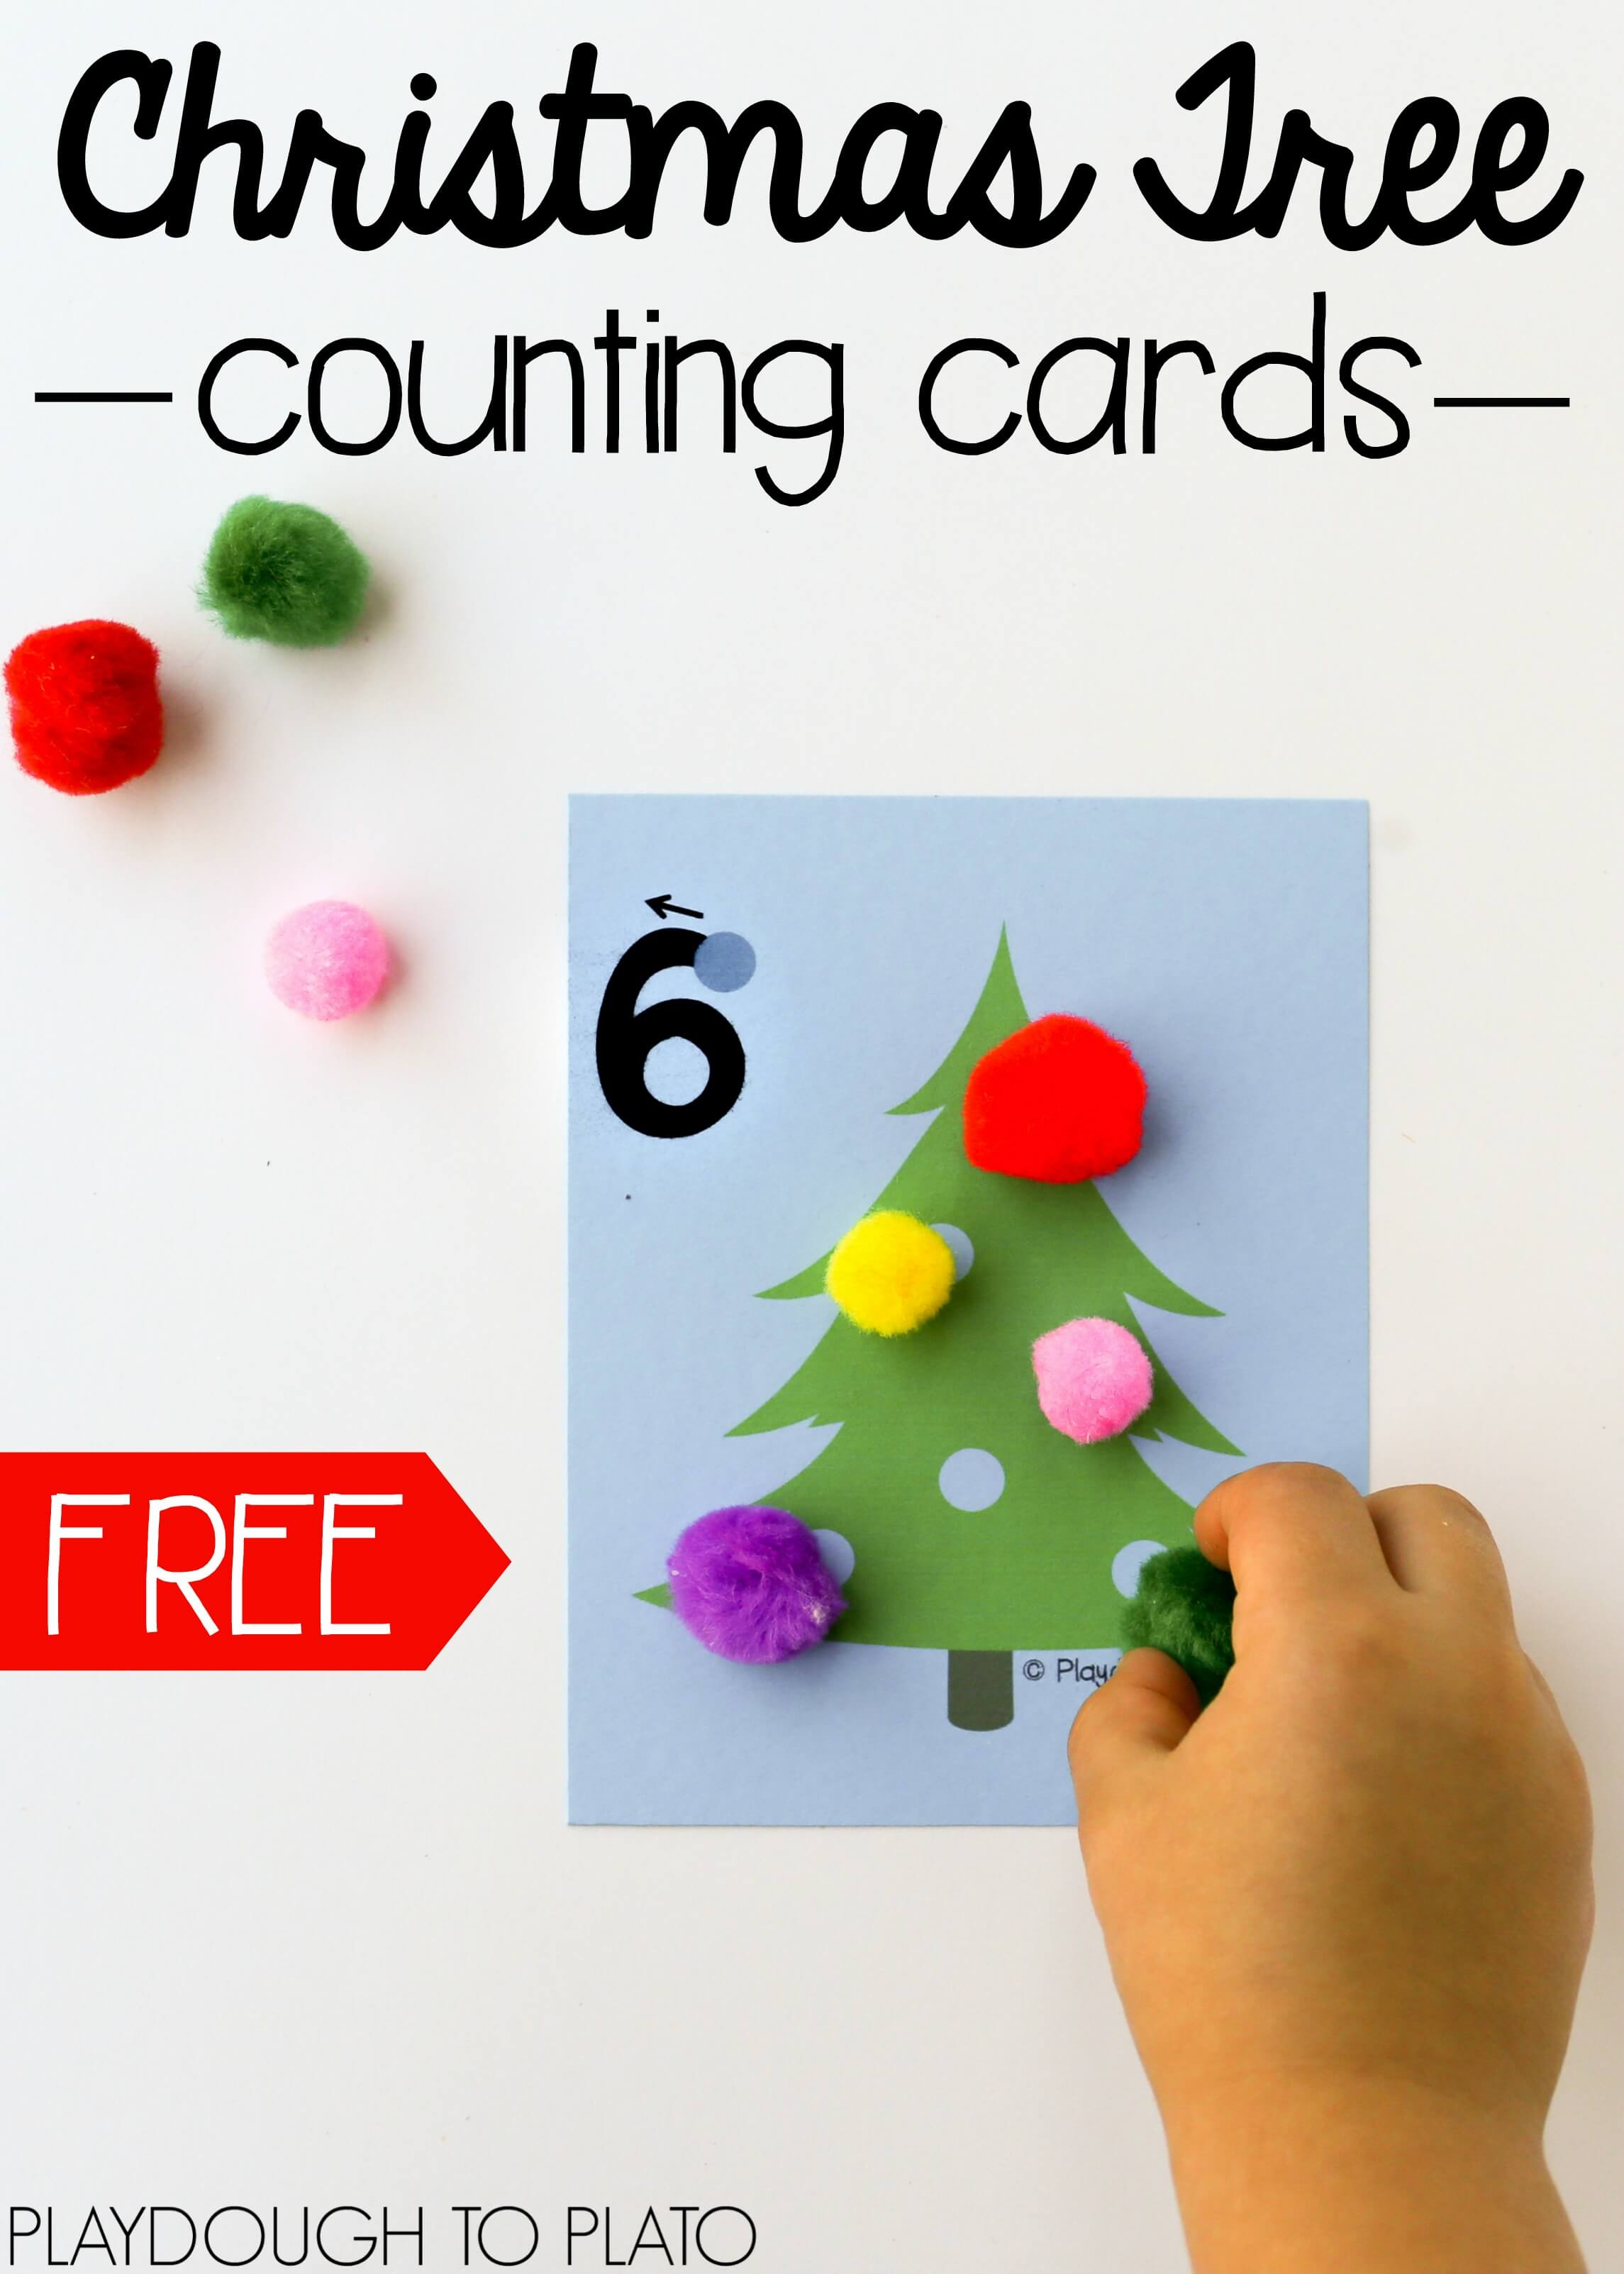 Christmas Tree Counting Cards